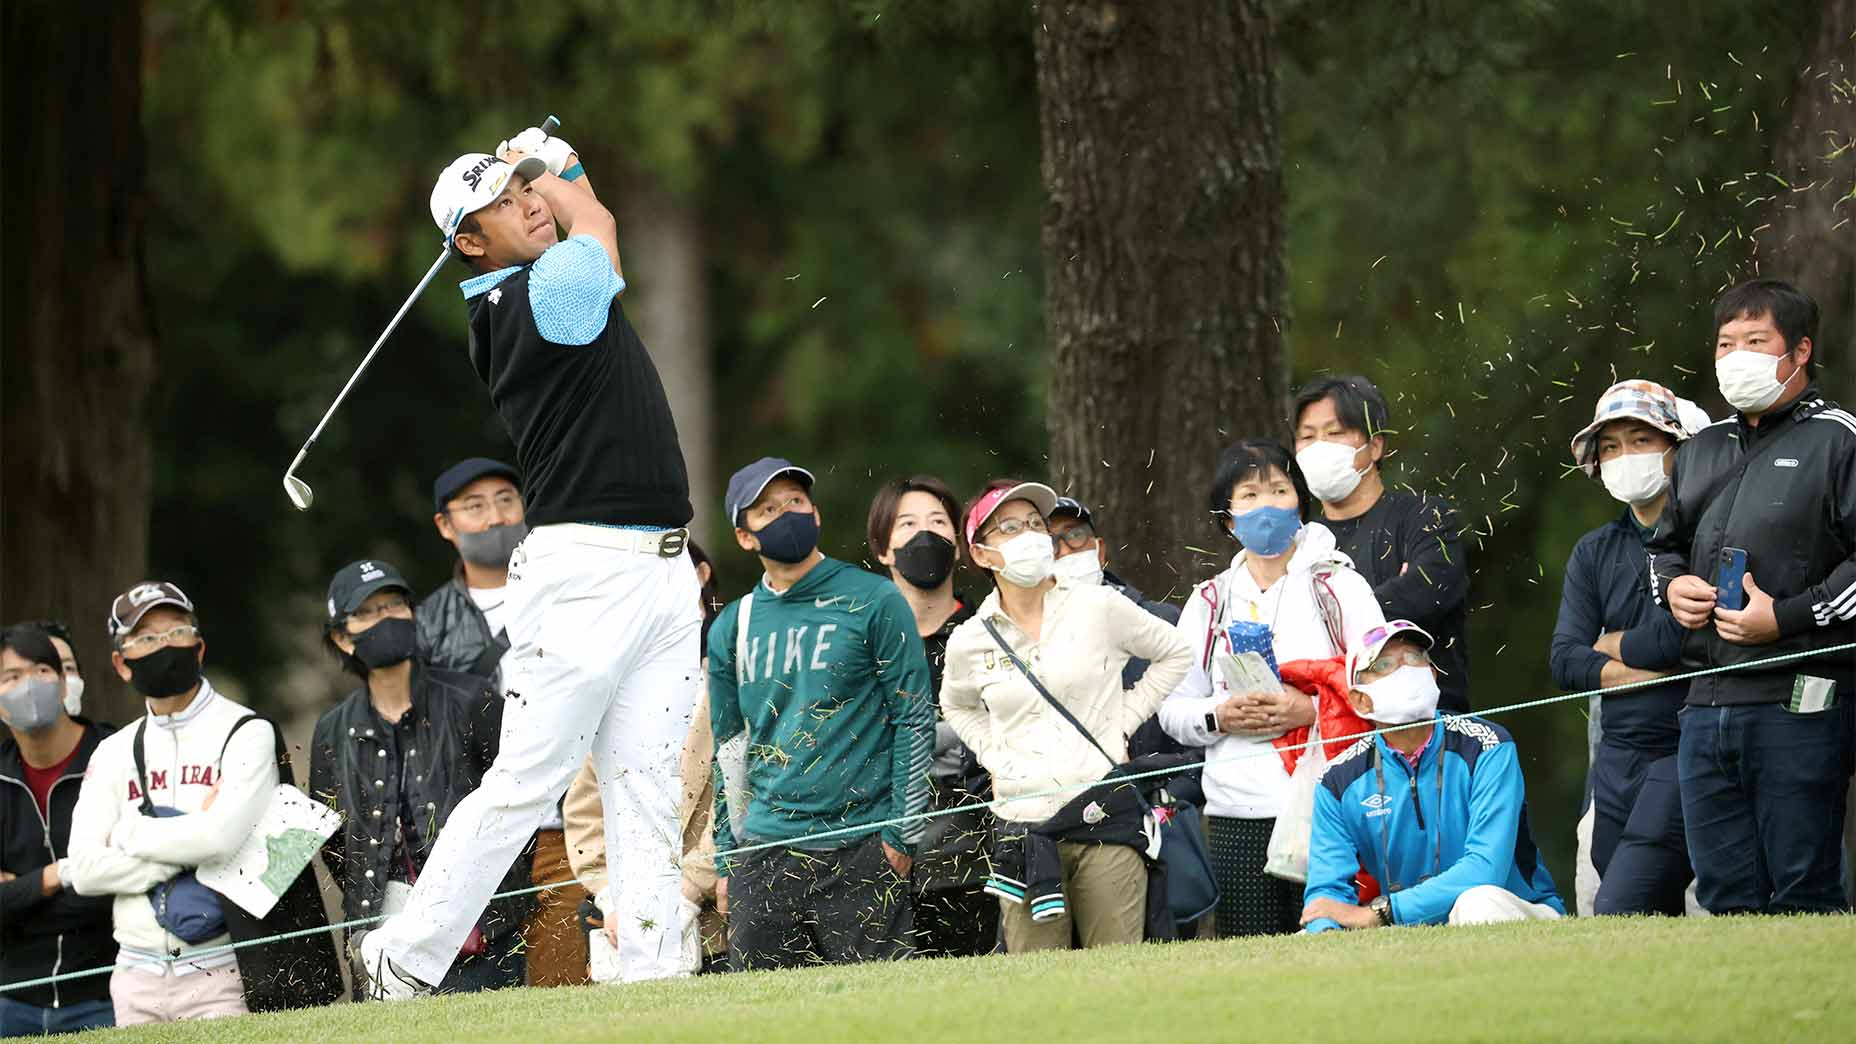 Hideki Matsuyama hits his second shot on the 15th hole during the first round of the Zozo Championship